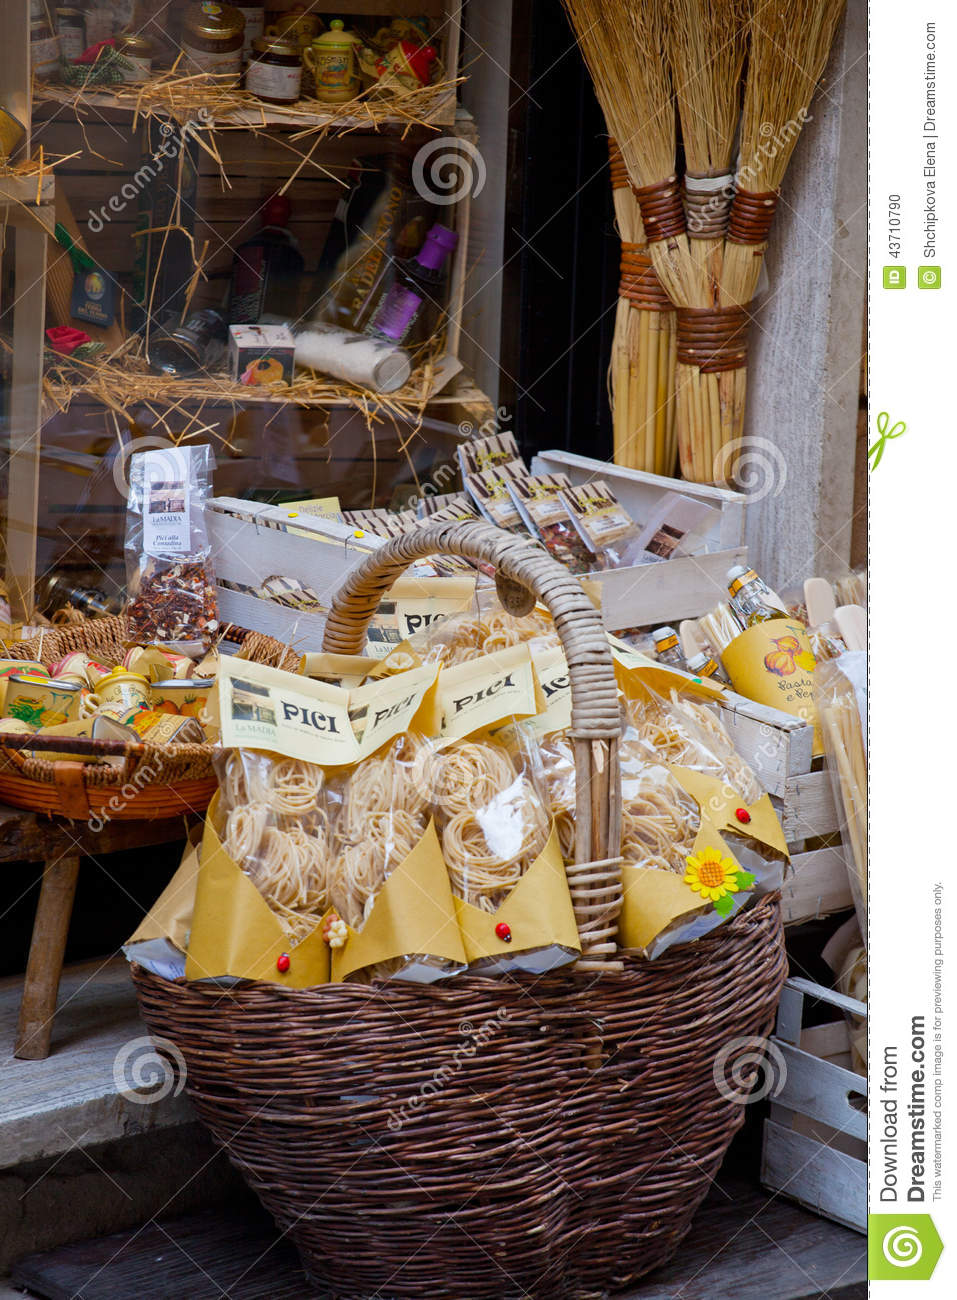 Tuscan souvenirs for tourists